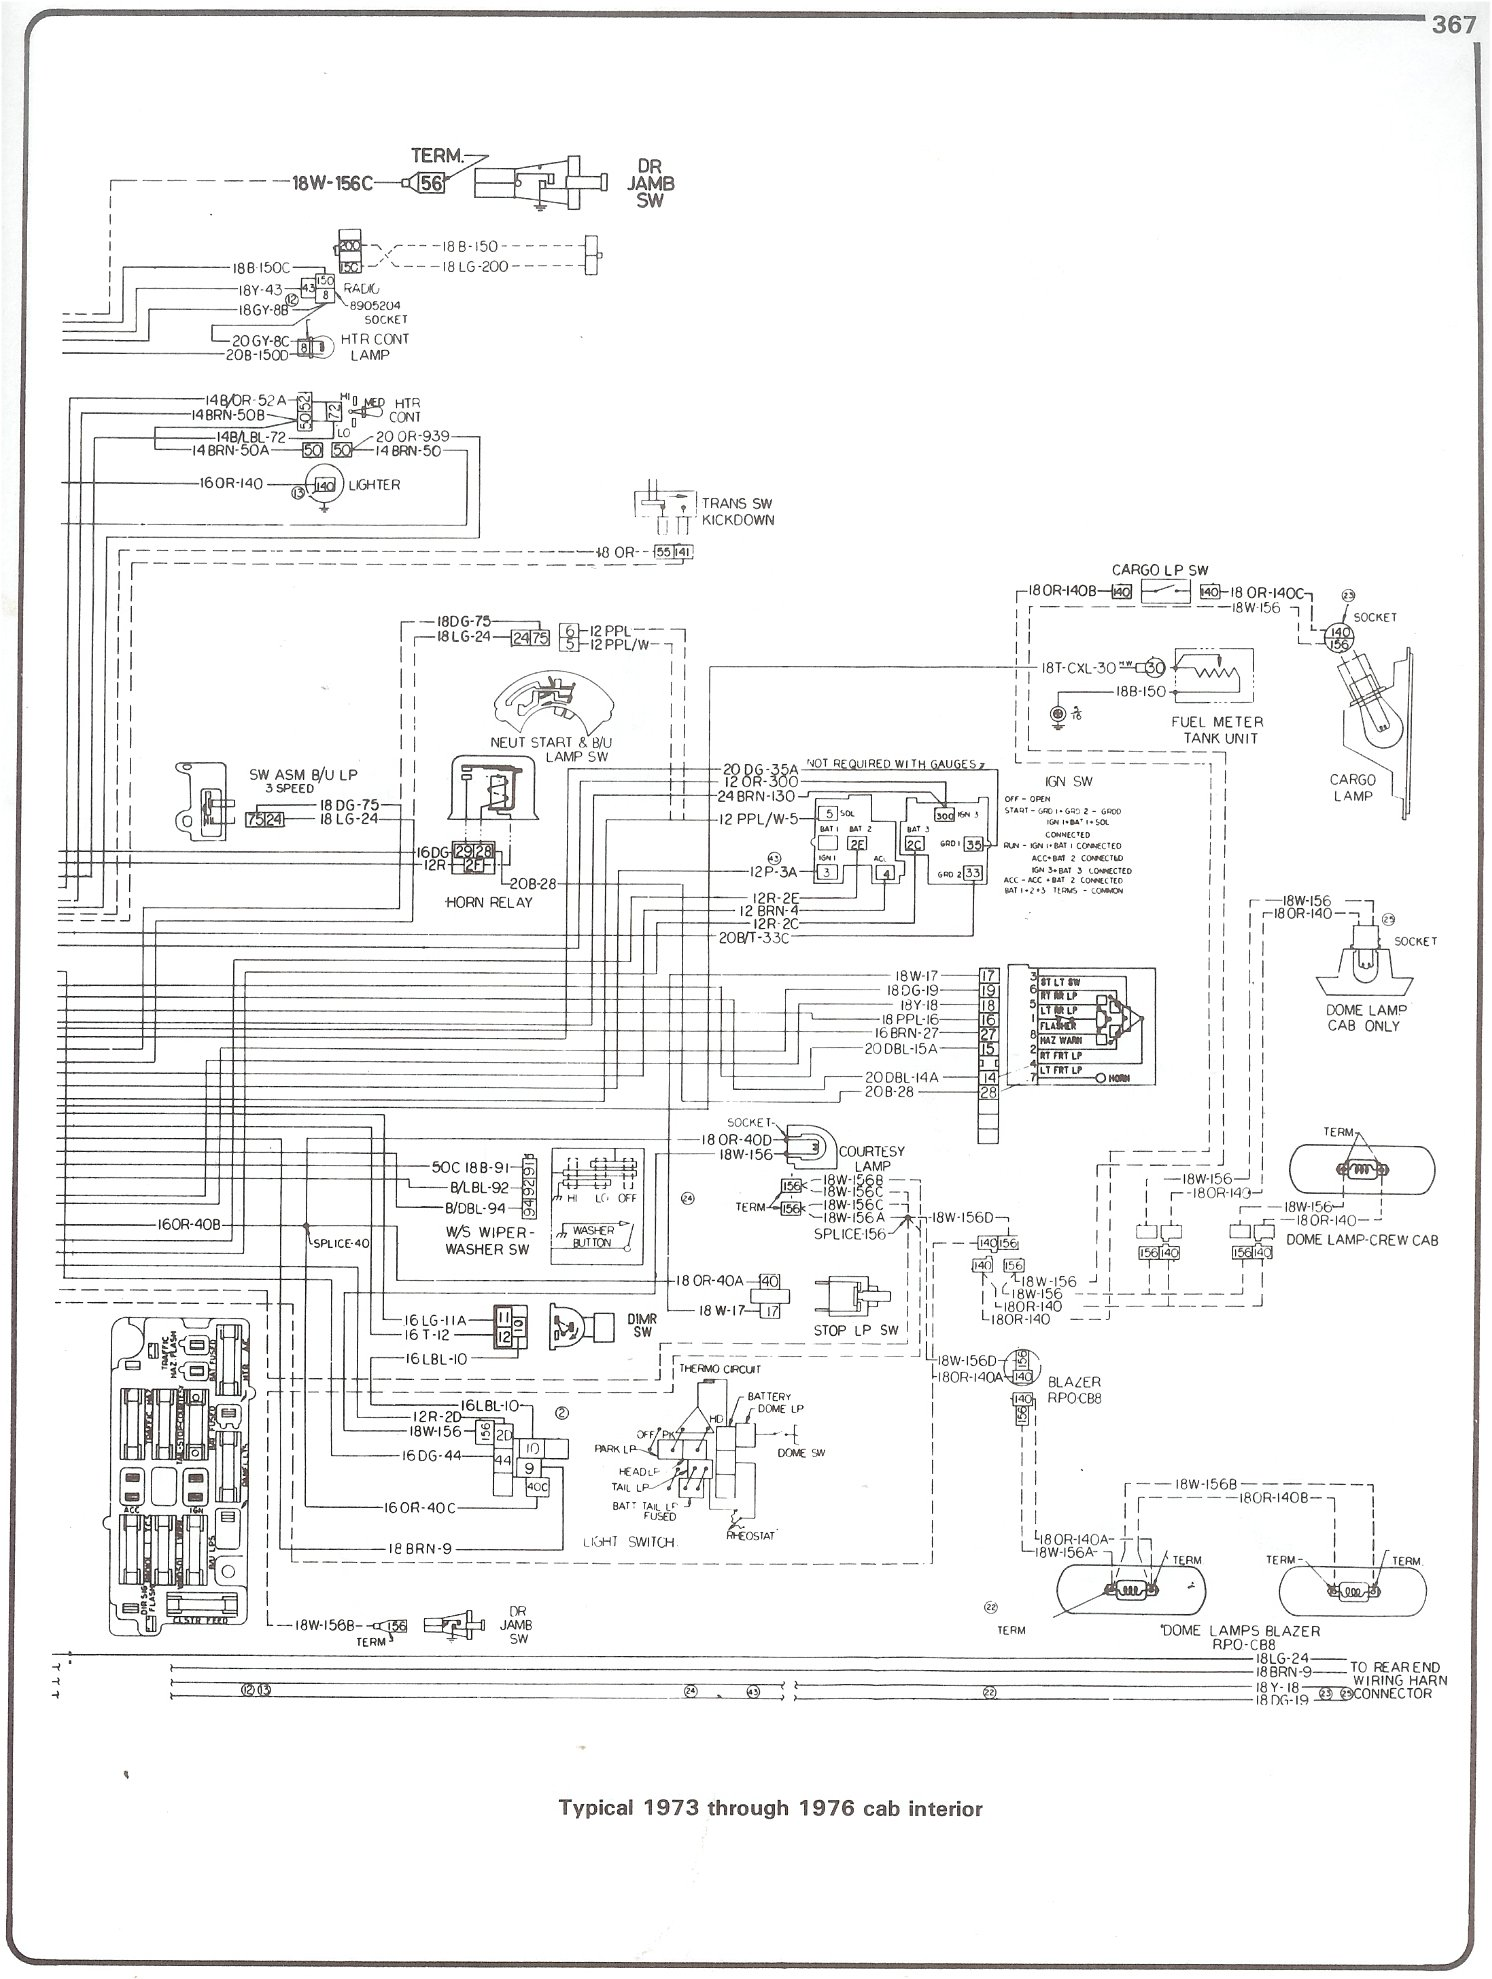 73 chevy blazer wiring diagram - wiring diagram float-data-a -  float-data-a.disnar.it  disnar.it